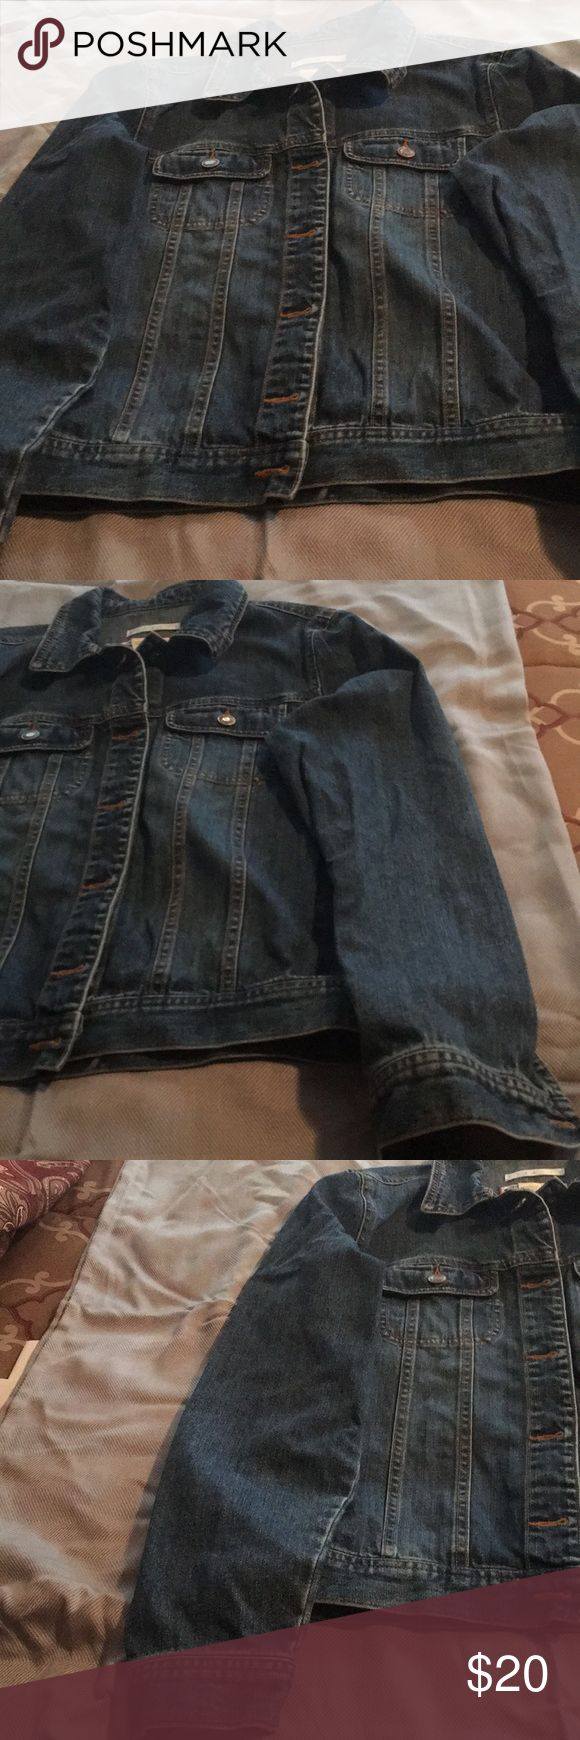 Ladies Old Navy Blue Jean jacket Ladies Old Navy blue jean stretch jacket size S. Old Navy Jackets & Coats Jean Jackets